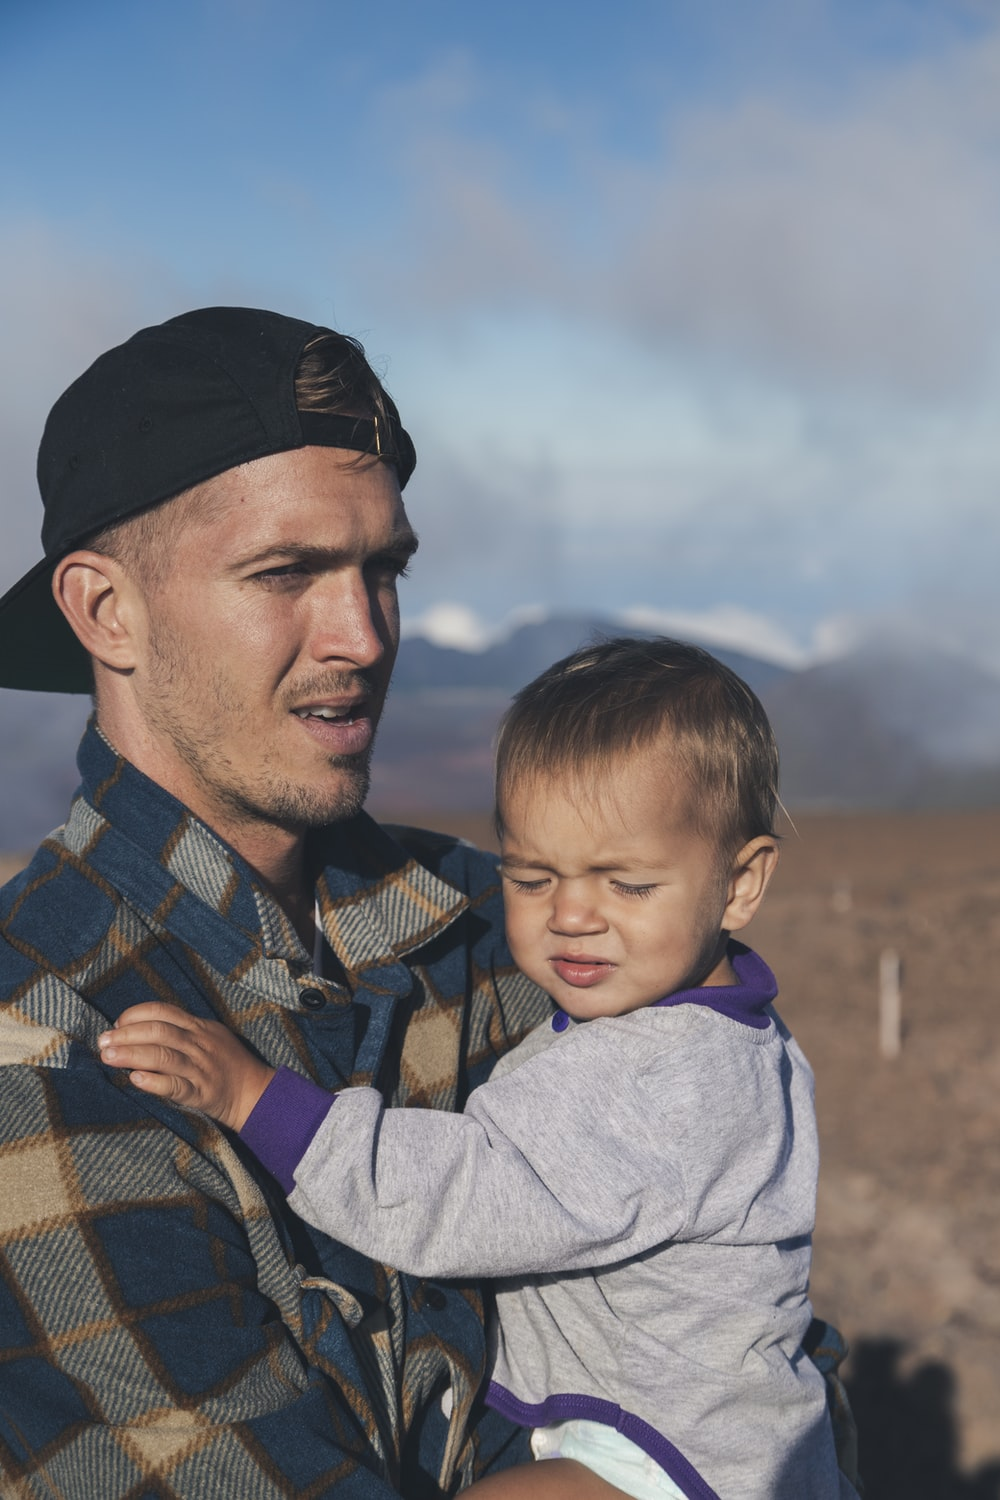 shallow focus photo of man carrying baby